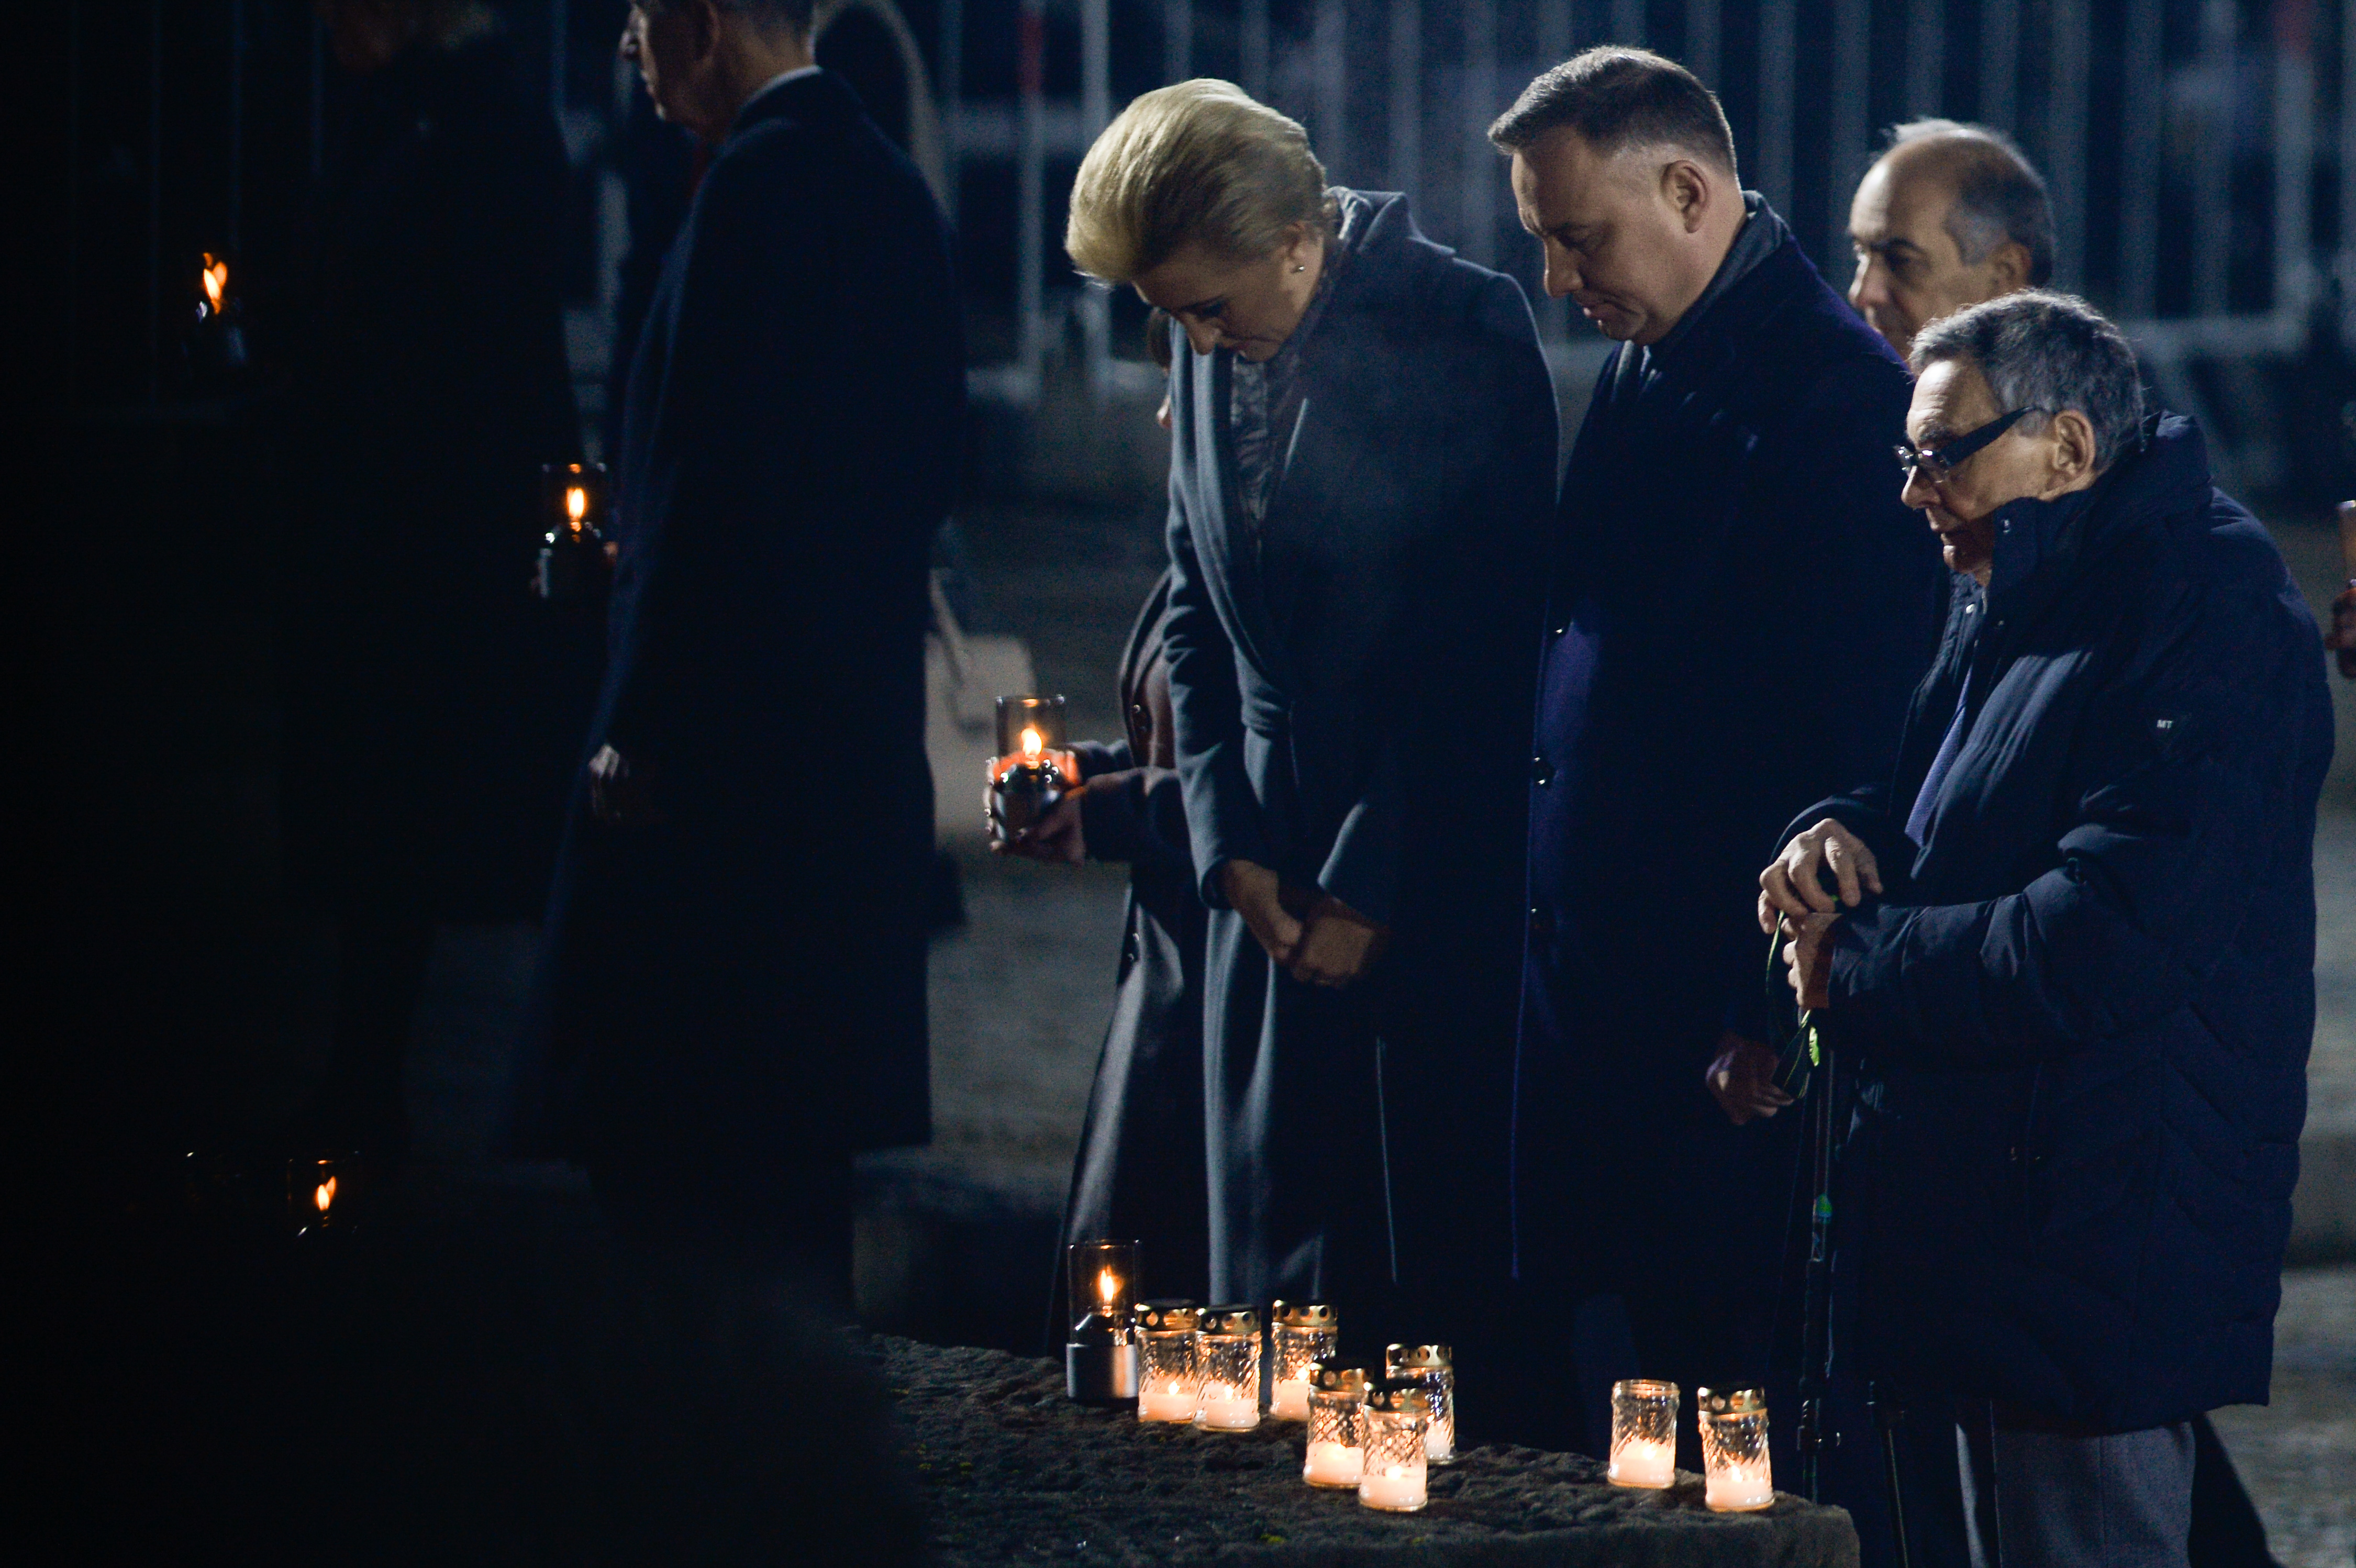 OSWIECIM, POLAND - JANUARY 27: Polish President Andrzej Duda, Polish First Lady Agata Kornhauser-Duda and Holocaust survivor Marian Turski light candles at the International Monument to the Victims of Fascism in the former Nazi-German concentration and extermination camp KL Auschwitz II-Birkenau during the 75th Anniversary of Auschwitz Liberation on January 27, 2020 in Oswiecim, Poland. International leaders as well as approximately 200 survivors and their families are gathering today at Auschwitz today to commemorate the 75th anniversary of the camp's liberation. The Nazis killed an estimated one million people at the camp during the World War II occupation of Poland by Nazi Germany. (Photo by Omar Marques/Getty Images)